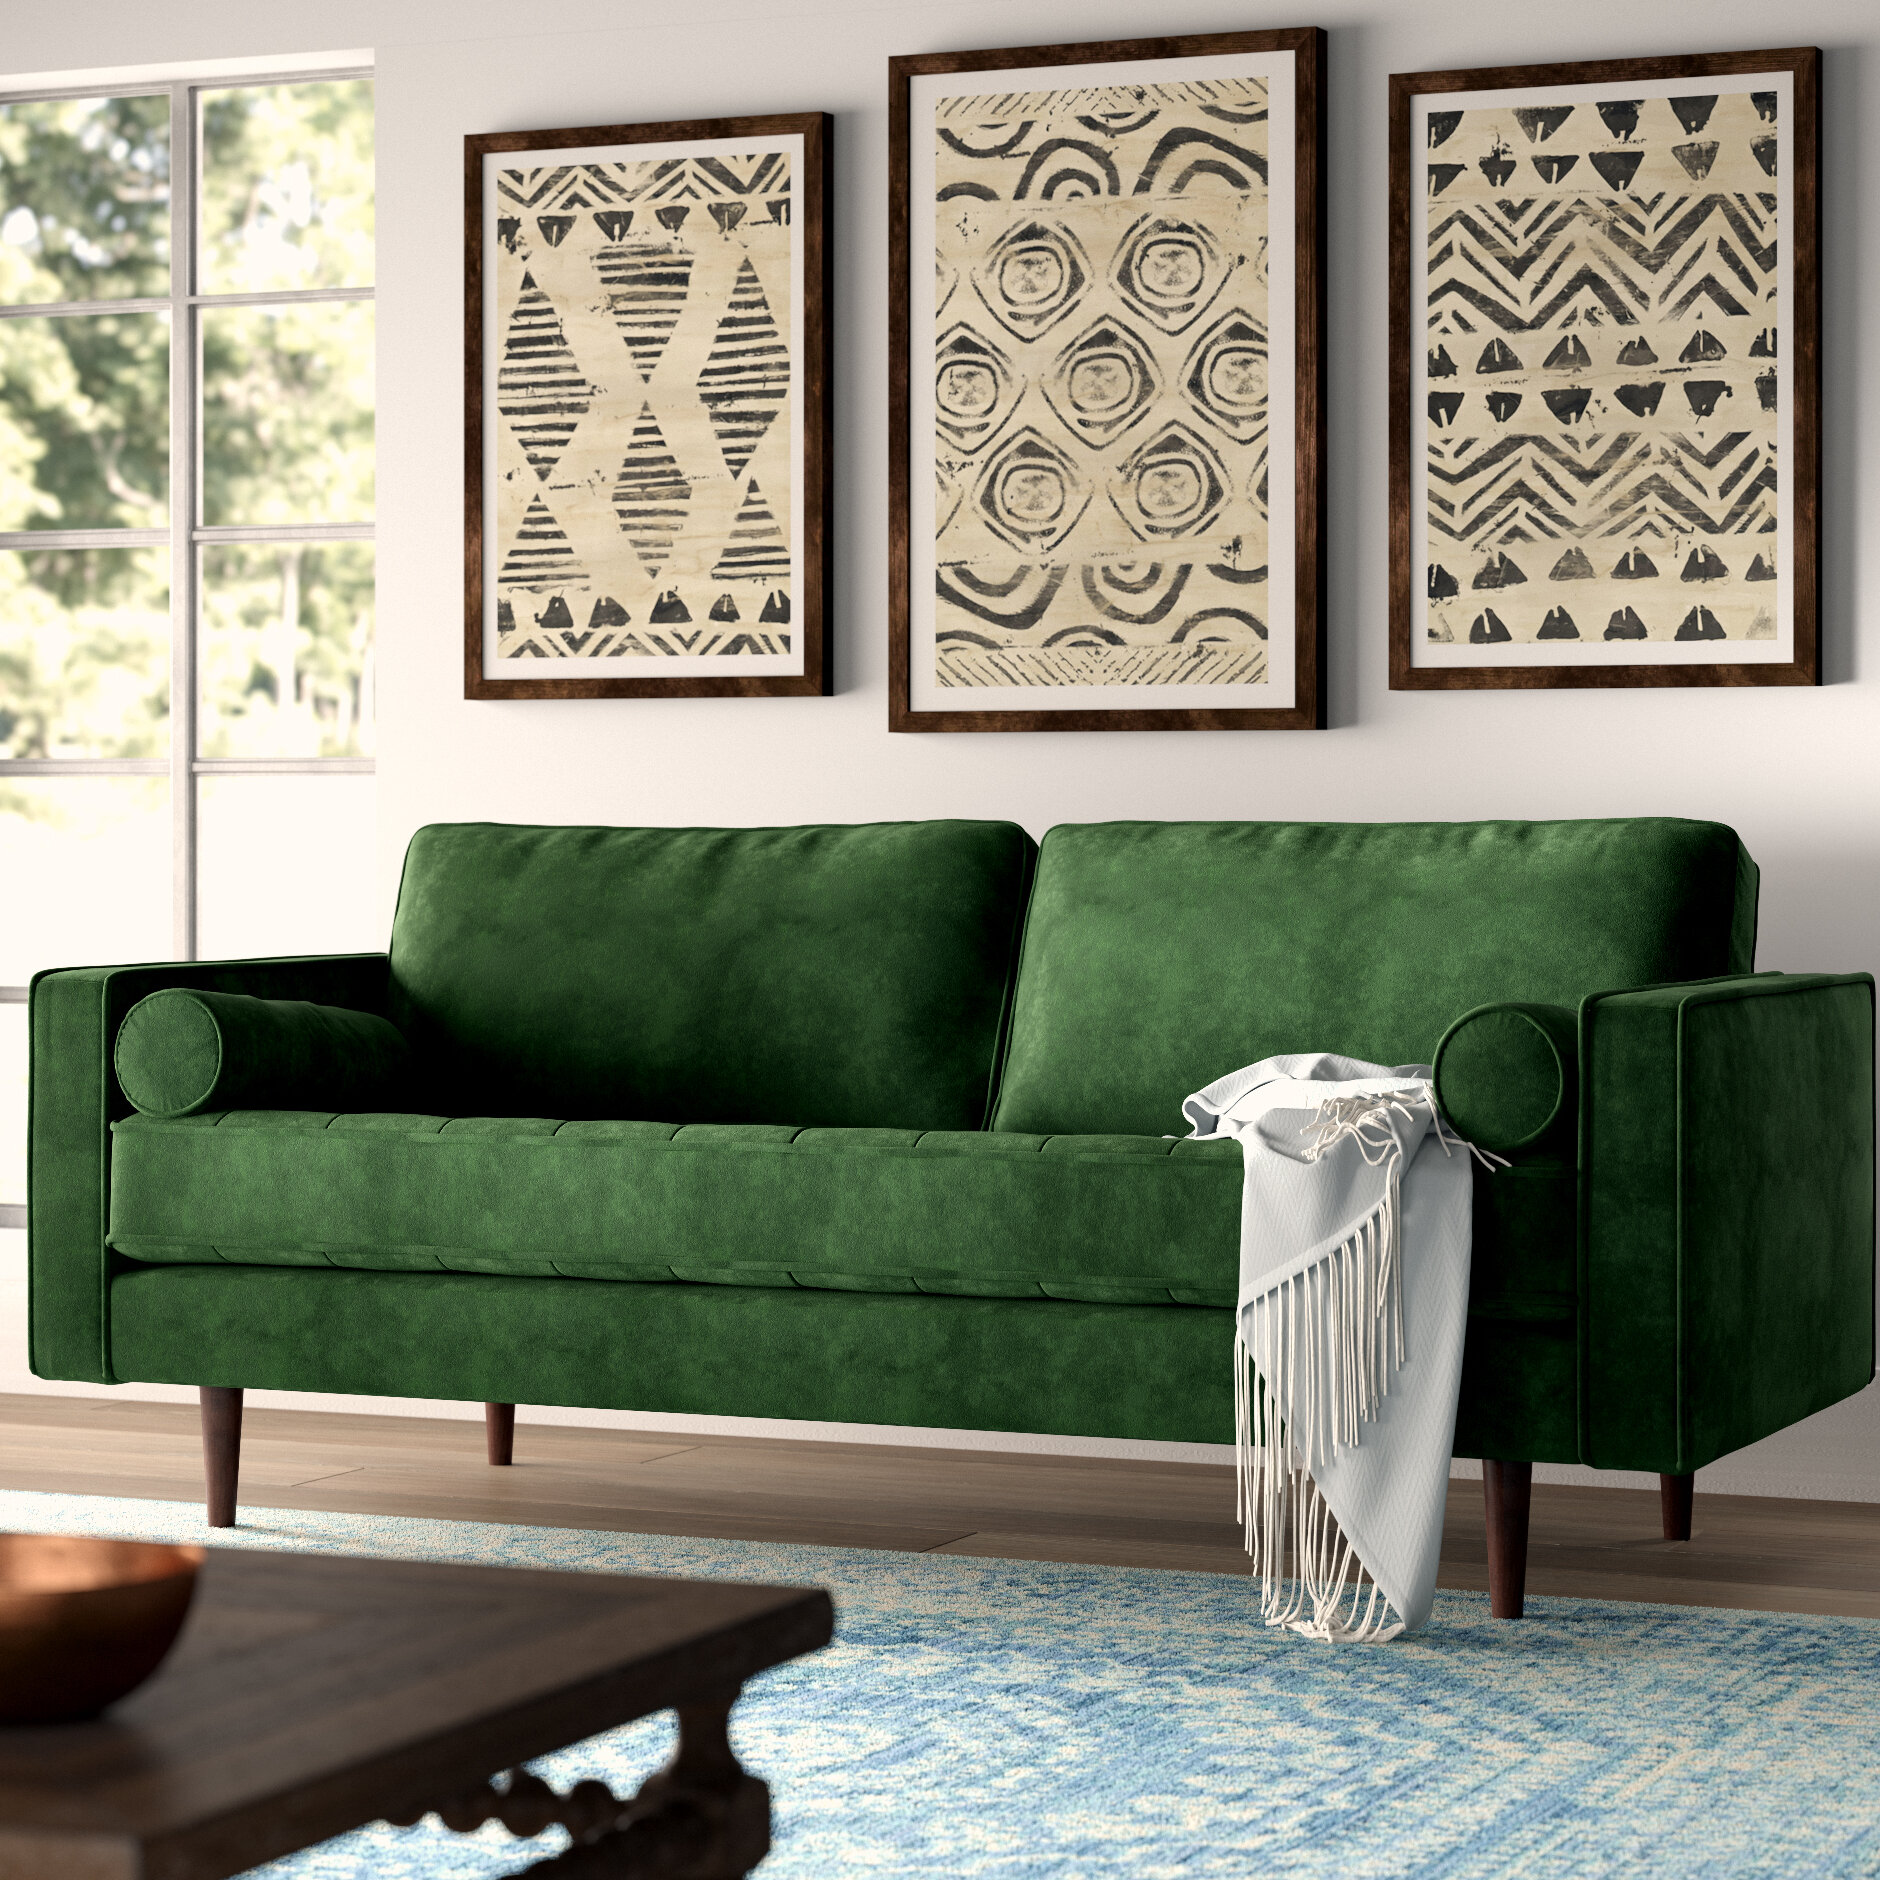 Fabulous Derry Sofa Andrewgaddart Wooden Chair Designs For Living Room Andrewgaddartcom